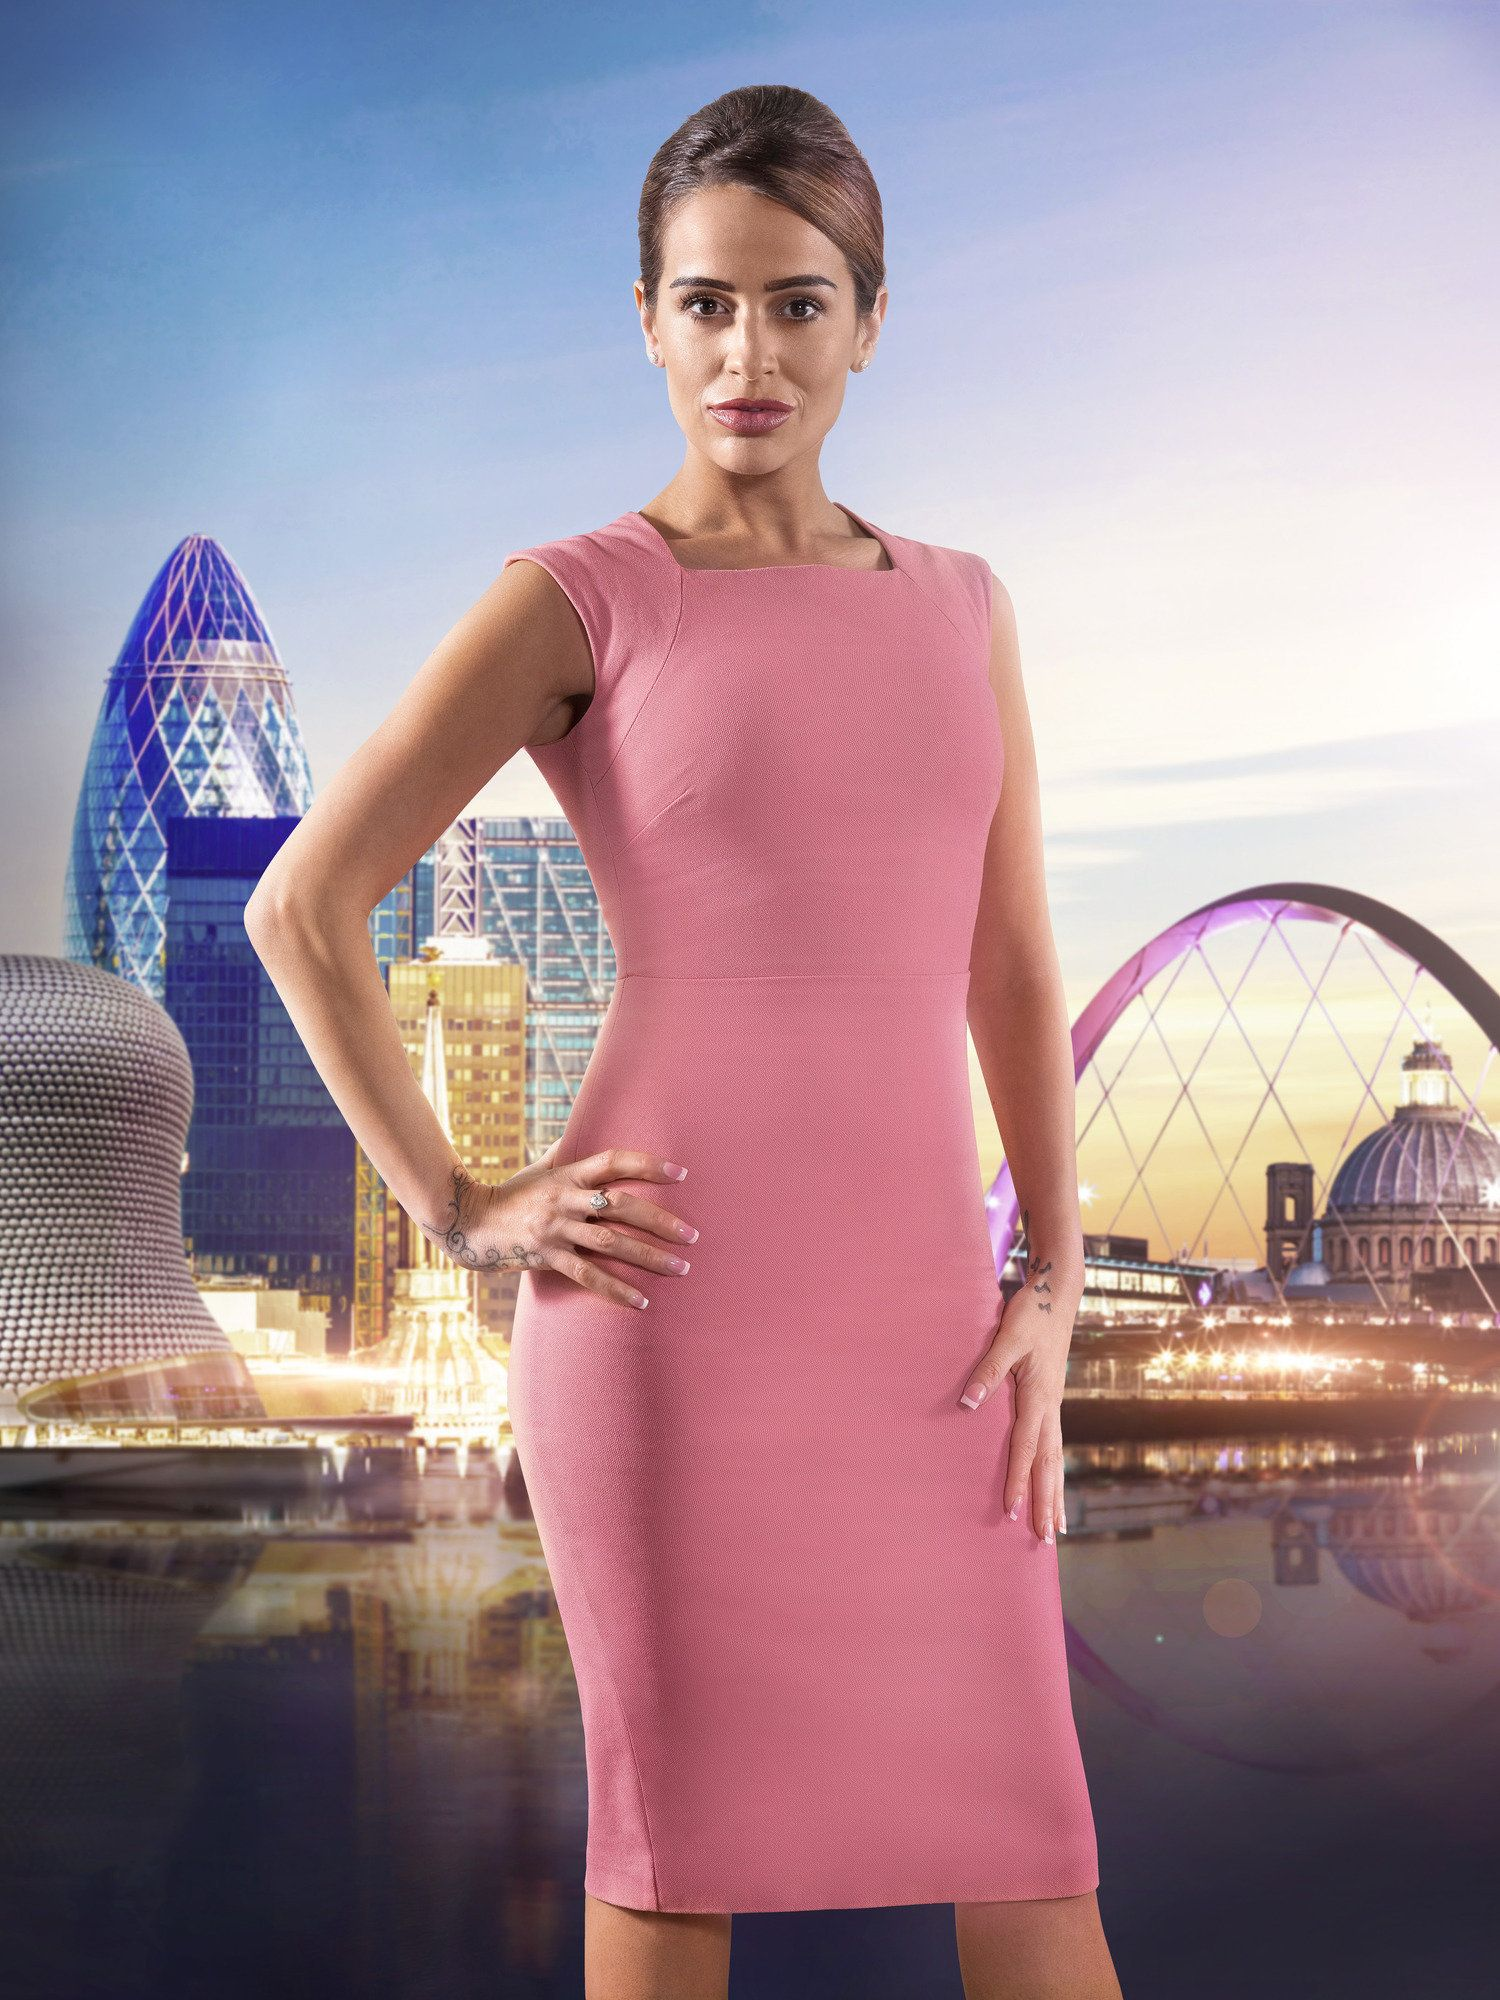 'Apprentice' Newbie Sarah Byrne Previously Appeared In 'Shameless' And